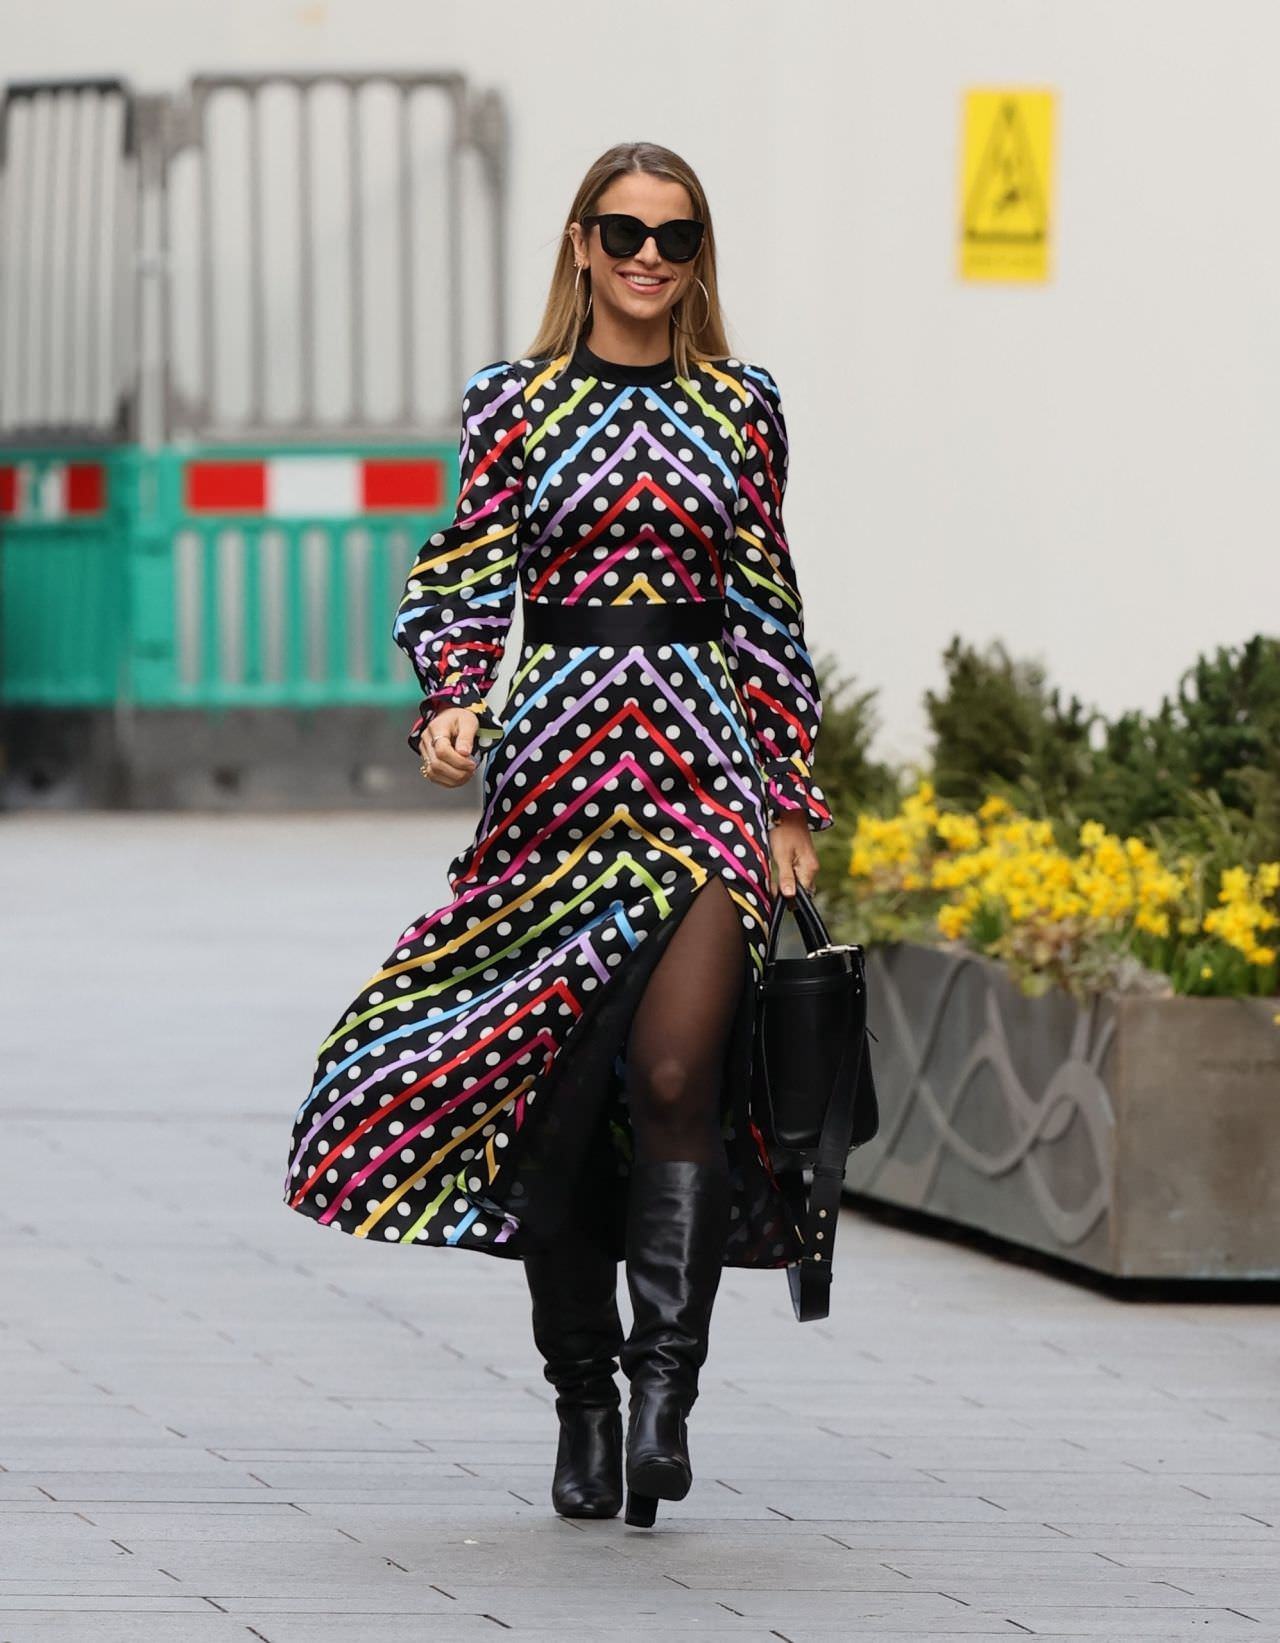 Vogue Williams Goes to Work in a Chic Polka Dot Striped Dress